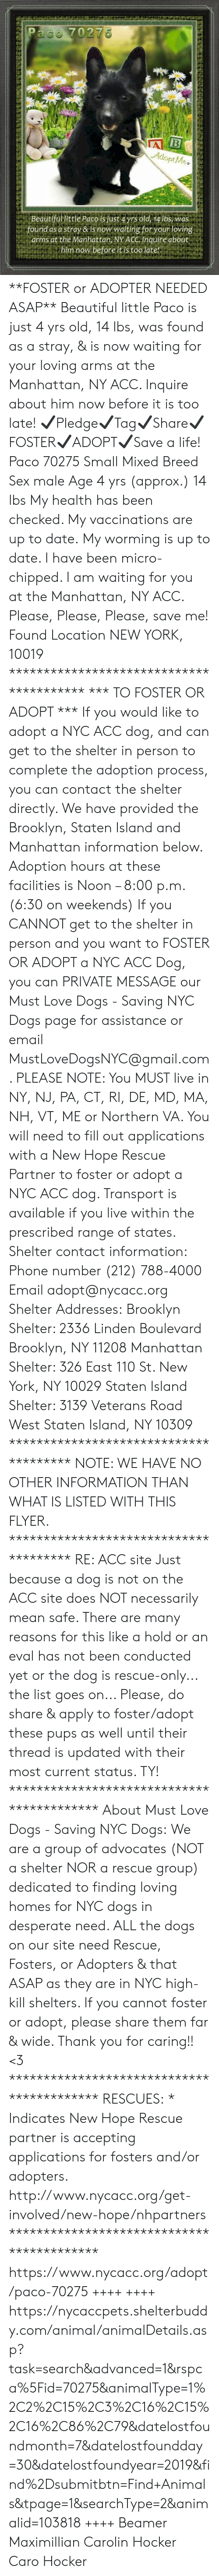 Animals, Beautiful, and Desperate: Paco 70275  B  Adopt Mes  Beautiful little Paco is just 4 yrs old, 14 lbs, was  found as a stray & is now waiting for your loving  arms at the Manhattan, NY ACC. Inquire about.  him now before it is too late! **FOSTER or ADOPTER NEEDED ASAP** Beautiful little Paco is just 4 yrs old, 14 lbs, was found as a stray, & is now waiting for your loving arms at the Manhattan, NY ACC. Inquire about him now before it is too late!  ✔Pledge✔Tag✔Share✔FOSTER✔ADOPT✔Save a life!  Paco 70275 Small Mixed Breed Sex male Age 4 yrs (approx.) 14 lbs  My health has been checked.  My vaccinations are up to date. My worming is up to date.  I have been micro-chipped.   I am waiting for you at the Manhattan, NY ACC.  Please, Please, Please, save me!  Found Location  NEW YORK, 10019  **************************************** *** TO FOSTER OR ADOPT ***   If you would like to adopt a NYC ACC dog, and can get to the shelter in person to complete the adoption process, you can contact the shelter directly. We have provided the Brooklyn, Staten Island and Manhattan information below. Adoption hours at these facilities is Noon – 8:00 p.m. (6:30 on weekends)  If you CANNOT get to the shelter in person and you want to FOSTER OR ADOPT a NYC ACC Dog, you can PRIVATE MESSAGE our Must Love Dogs - Saving NYC Dogs page for assistance or email MustLoveDogsNYC@gmail.com.   PLEASE NOTE: You MUST live in NY, NJ, PA, CT, RI, DE, MD, MA, NH, VT, ME or Northern VA. You will need to fill out applications with a New Hope Rescue Partner to foster or adopt a NYC ACC dog. Transport is available if you live within the prescribed range of states.  Shelter contact information: Phone number (212) 788-4000 Email adopt@nycacc.org  Shelter Addresses: Brooklyn Shelter: 2336 Linden Boulevard Brooklyn, NY 11208 Manhattan Shelter: 326 East 110 St. New York, NY 10029 Staten Island Shelter: 3139 Veterans Road West Staten Island, NY 10309 **************************************  NOTE: WE HAVE NO OTHER INFORMATION THAN WHAT IS LISTED WITH THIS FLYER.  ************************************** RE: ACC site Just because a dog is not on the ACC site does NOT necessarily mean safe. There are many reasons for this like a hold or an eval has not been conducted yet or the dog is rescue-only... the list goes on... Please, do share & apply to foster/adopt these pups as well until their thread is updated with their most current status. TY! ****************************************** About Must Love Dogs - Saving NYC Dogs: We are a group of advocates (NOT a shelter NOR a rescue group) dedicated to finding loving homes for NYC dogs in desperate need. ALL the dogs on our site need Rescue, Fosters, or Adopters & that ASAP as they are in NYC high-kill shelters. If you cannot foster or adopt, please share them far & wide. Thank you for caring!! <3 ****************************************** RESCUES: * Indicates New Hope Rescue partner is accepting applications for fosters and/or adopters. http://www.nycacc.org/get-involved/new-hope/nhpartners ****************************************** https://www.nycacc.org/adopt/paco-70275 ++++ ++++ https://nycaccpets.shelterbuddy.com/animal/animalDetails.asp?task=search&advanced=1&rspca%5Fid=70275&animalType=1%2C2%2C15%2C3%2C16%2C15%2C16%2C86%2C79&datelostfoundmonth=7&datelostfoundday=30&datelostfoundyear=2019&find%2Dsubmitbtn=Find+Animals&tpage=1&searchType=2&animalid=103818 ++++ Beamer Maximillian Carolin Hocker Caro Hocker